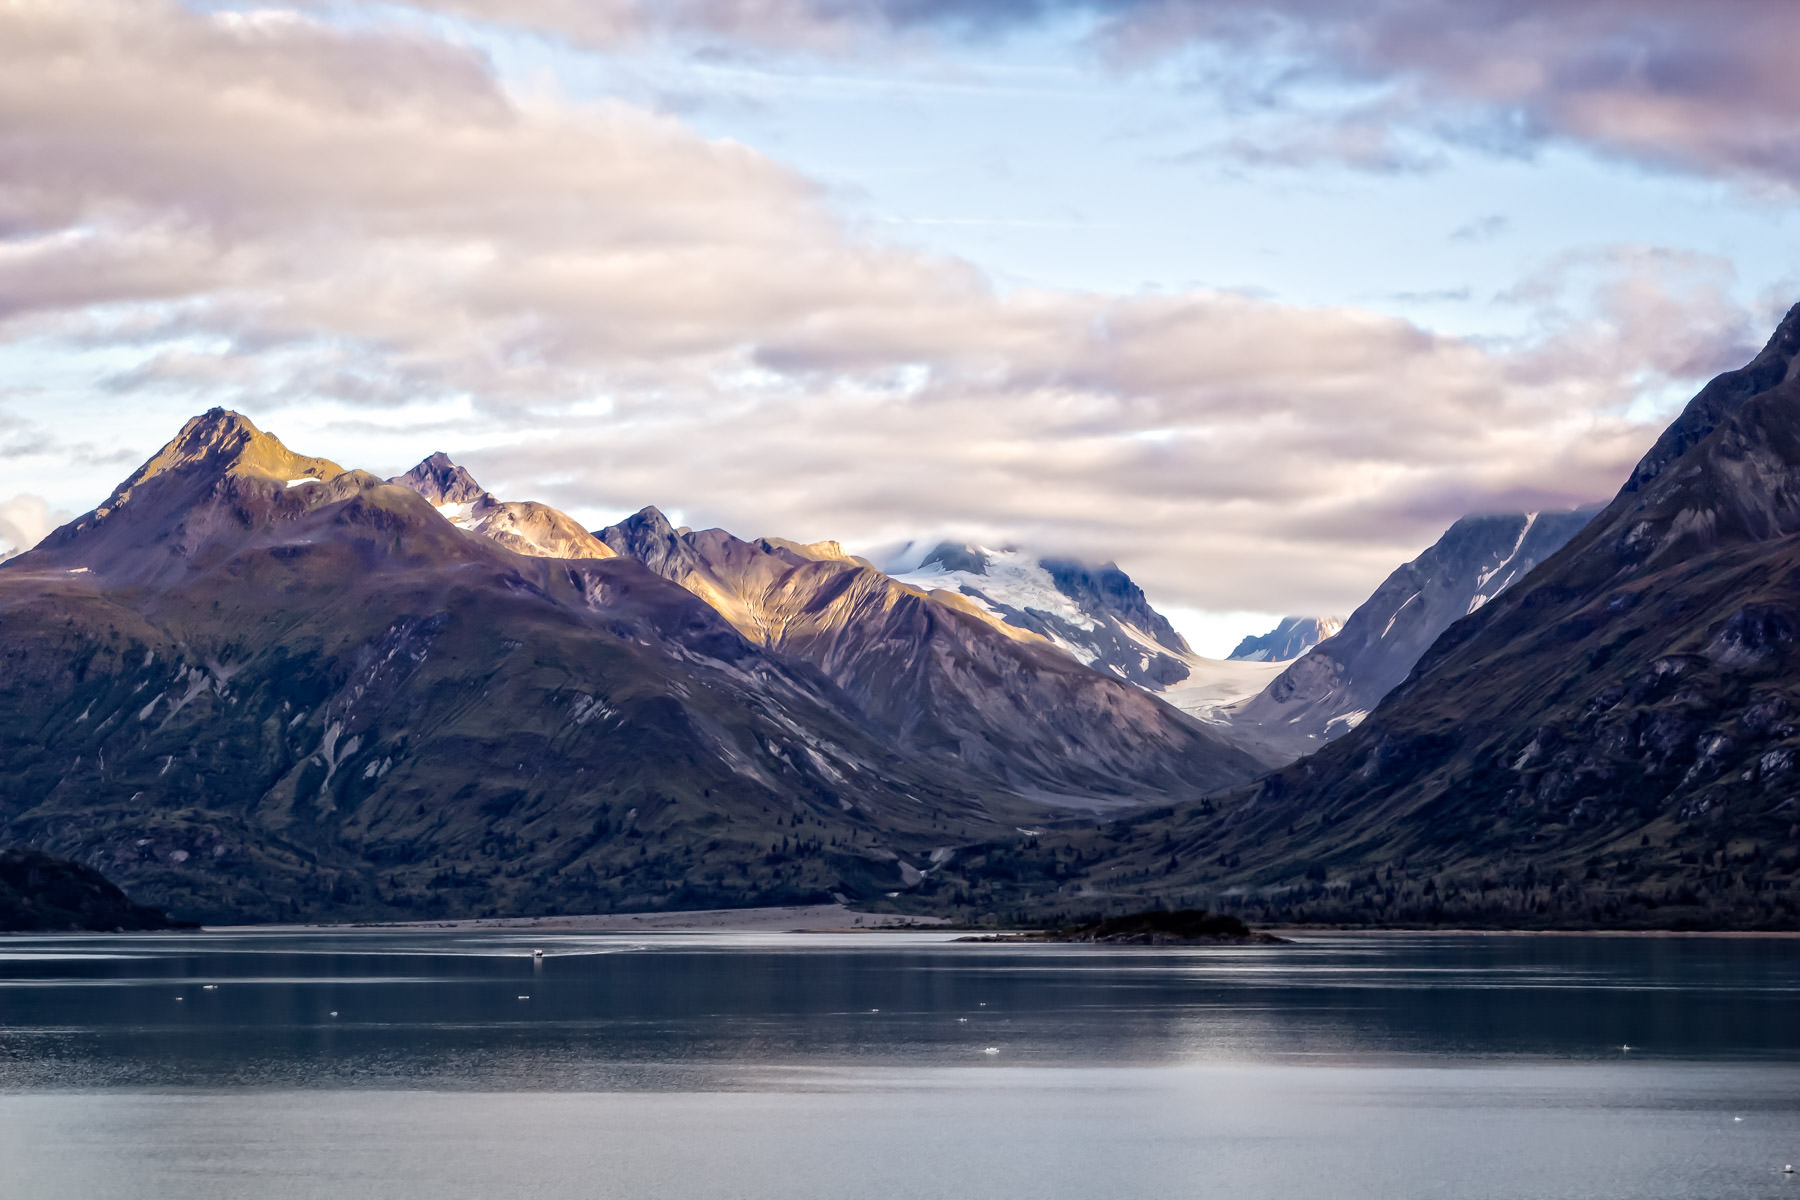 Morning clouds begin to burn off as the late-summer sun warms the mountains of Alaska's Glacier Bay.